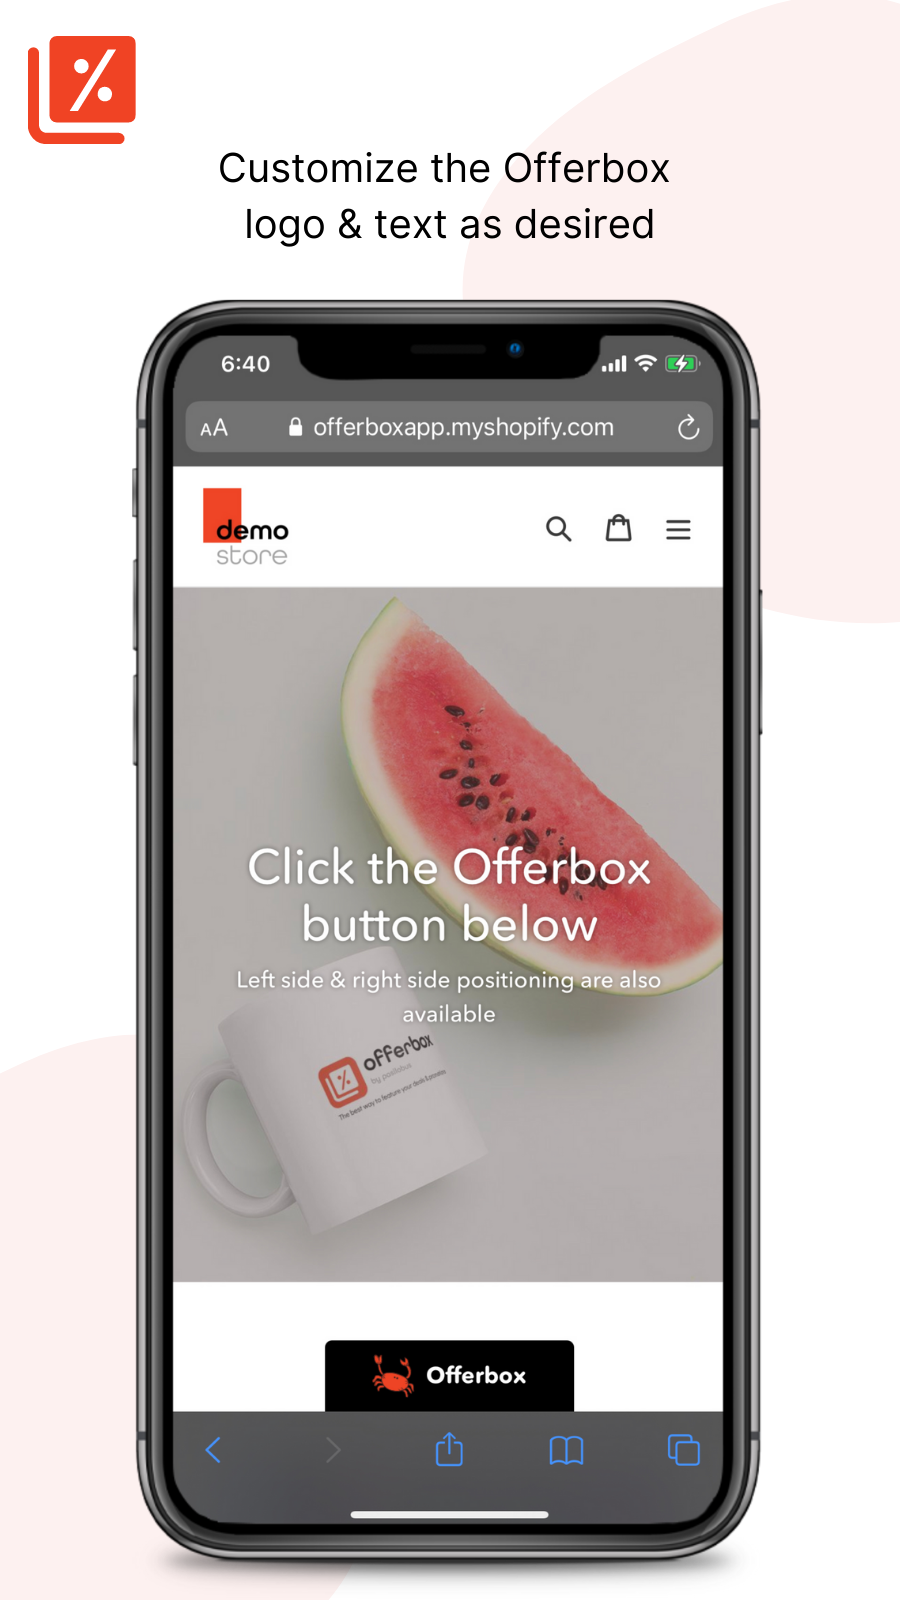 Customize the Offerbox logo & text as desired - Offerbox